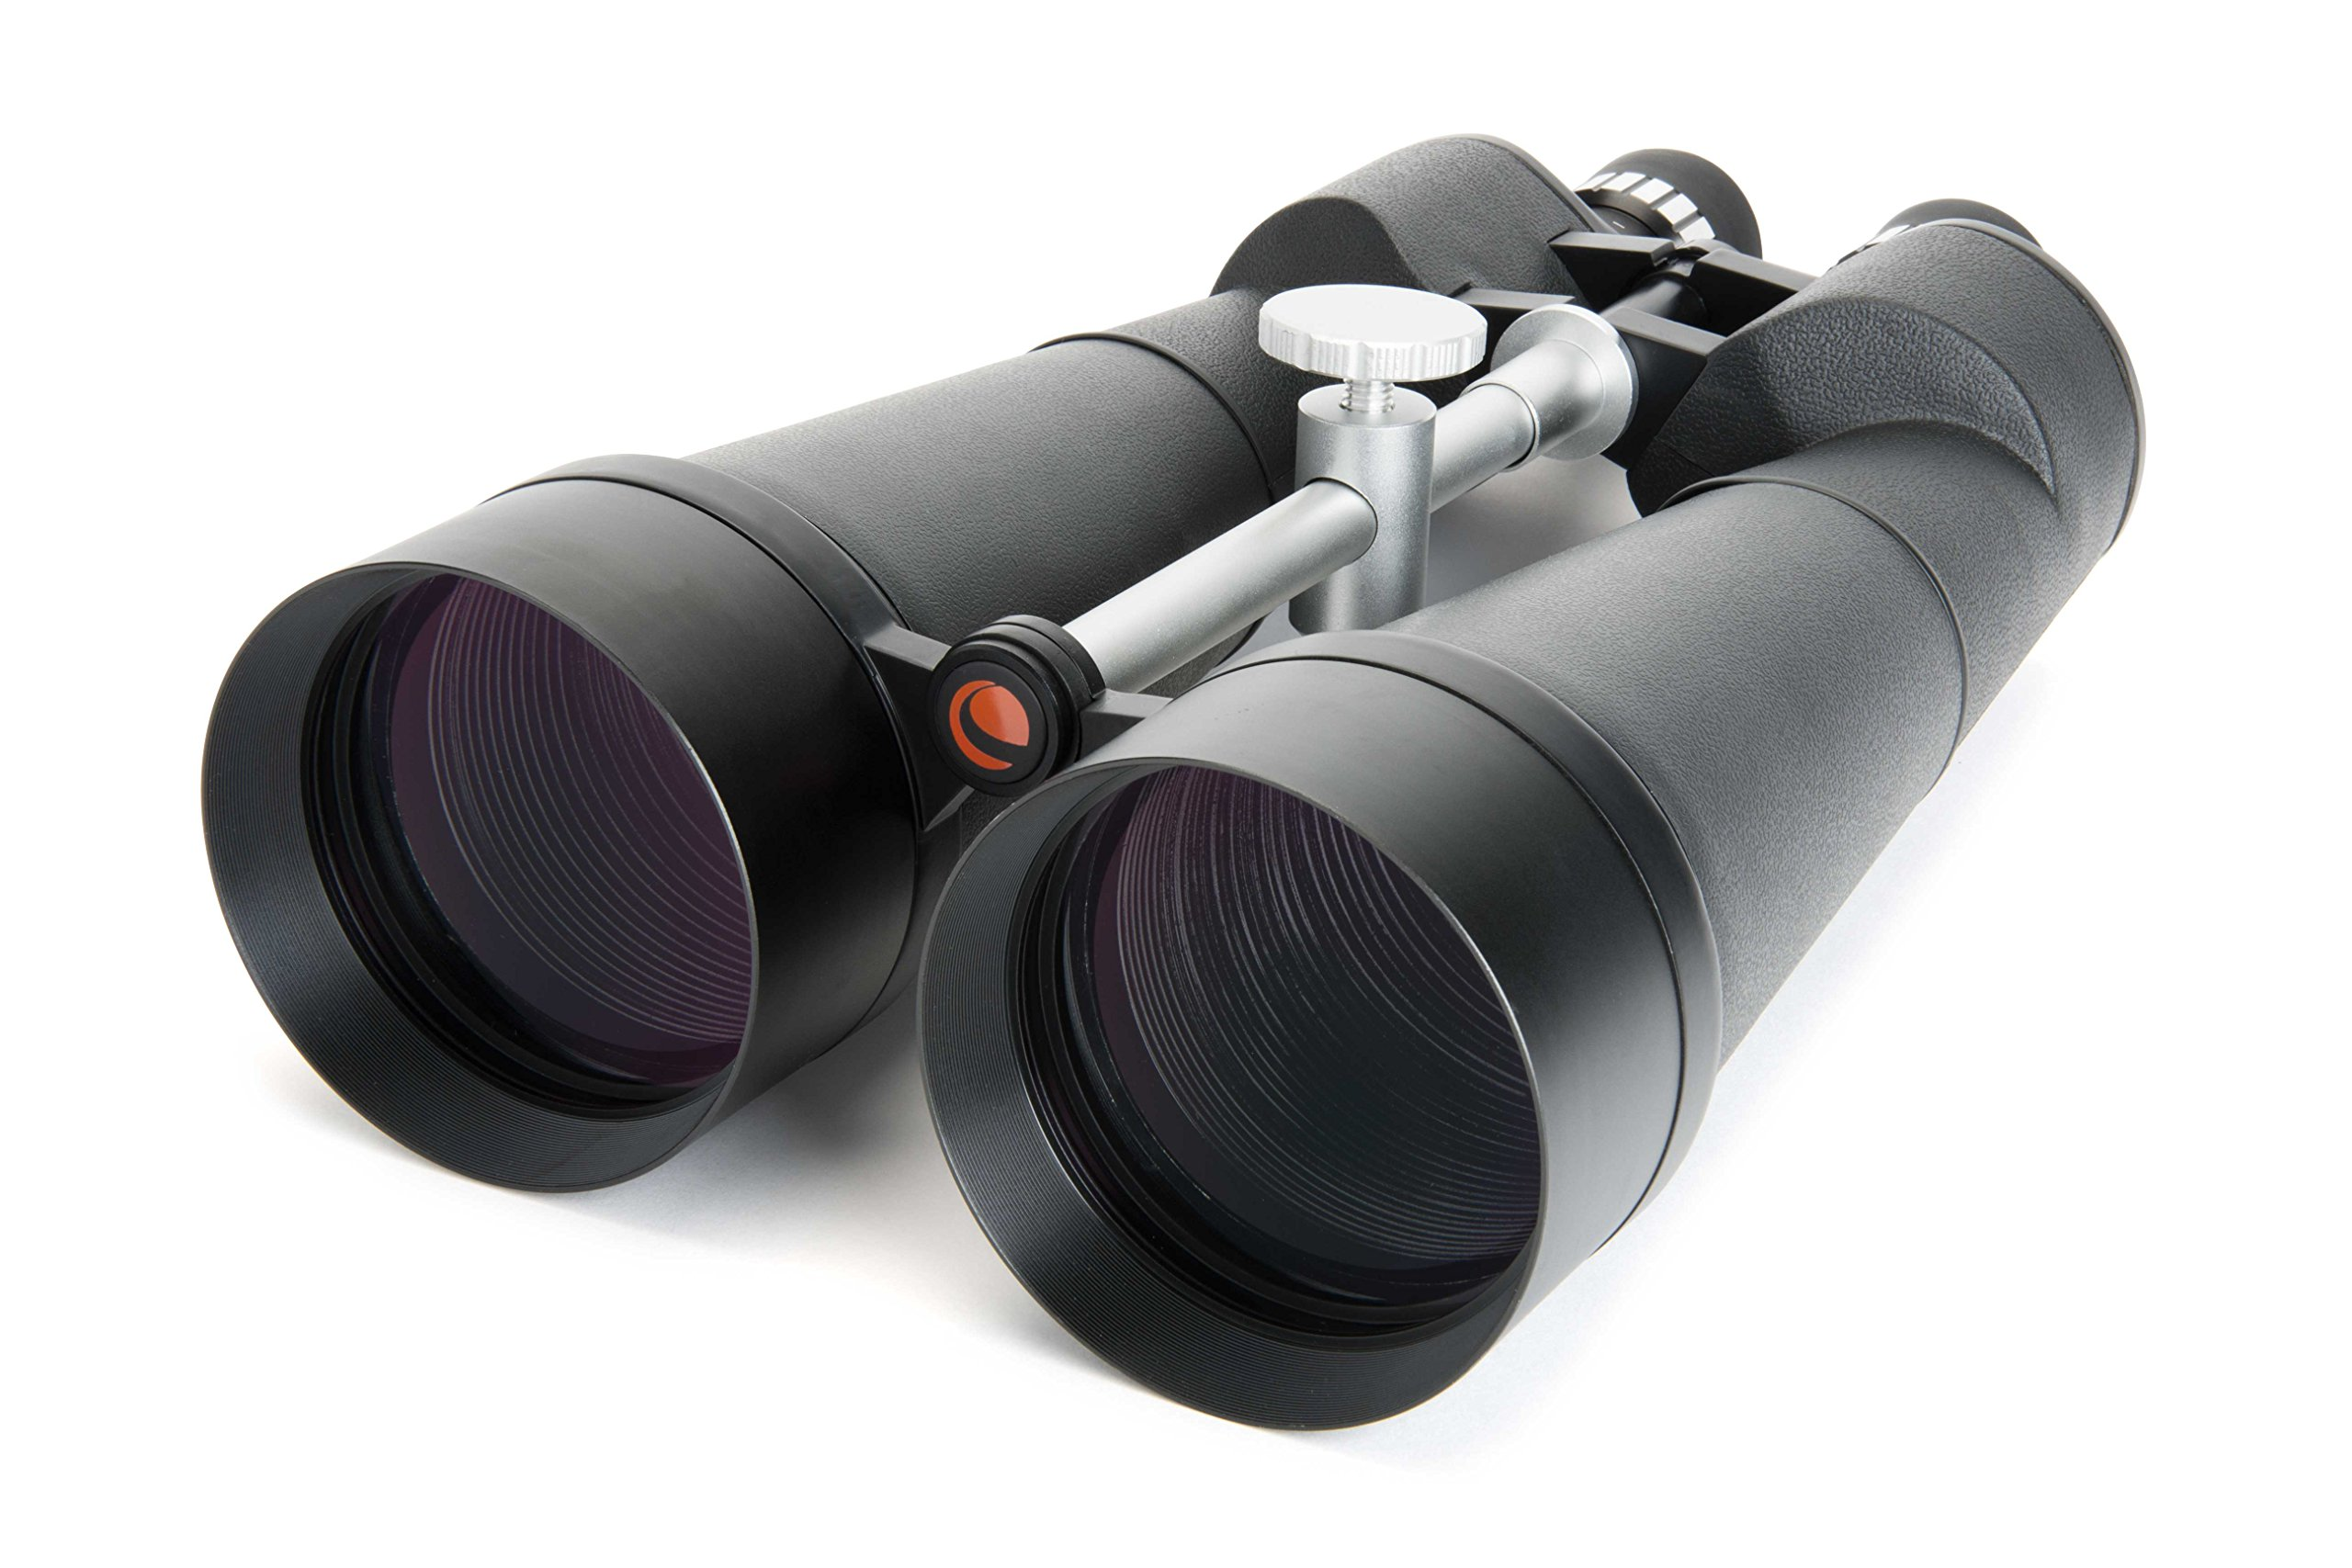 Celestron SkyMaster 25X100 ASTRO Binoculars with deluxe carrying case by Celestron